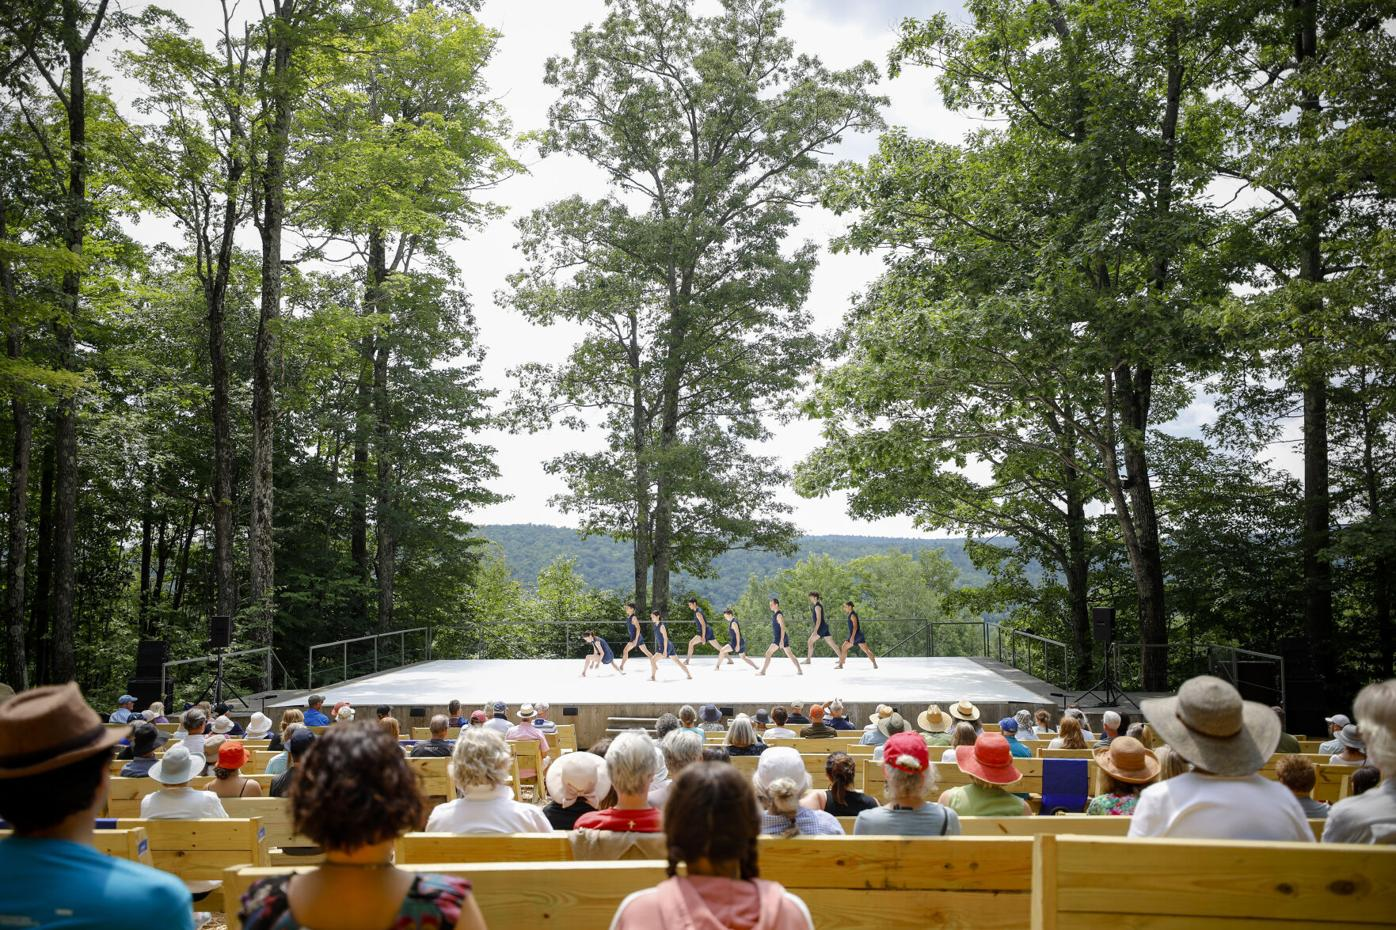 Dancers perform at outdoor stage